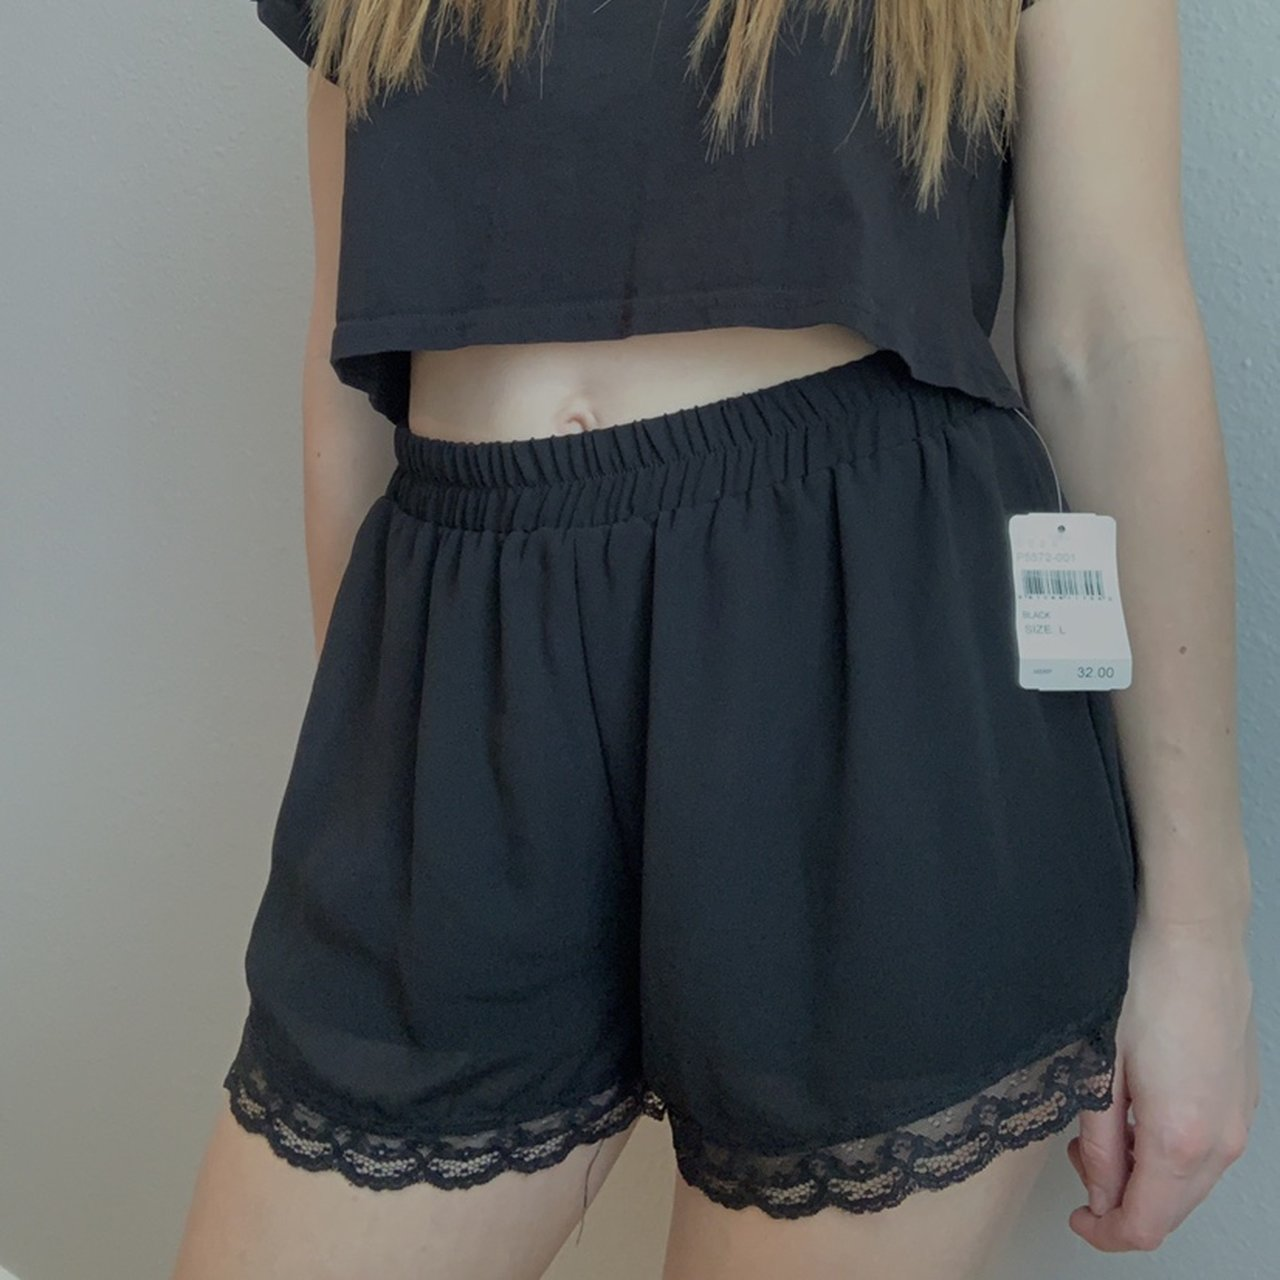 7294c6462b Cute black shorts with a lace trim, the tag says large but i - Depop